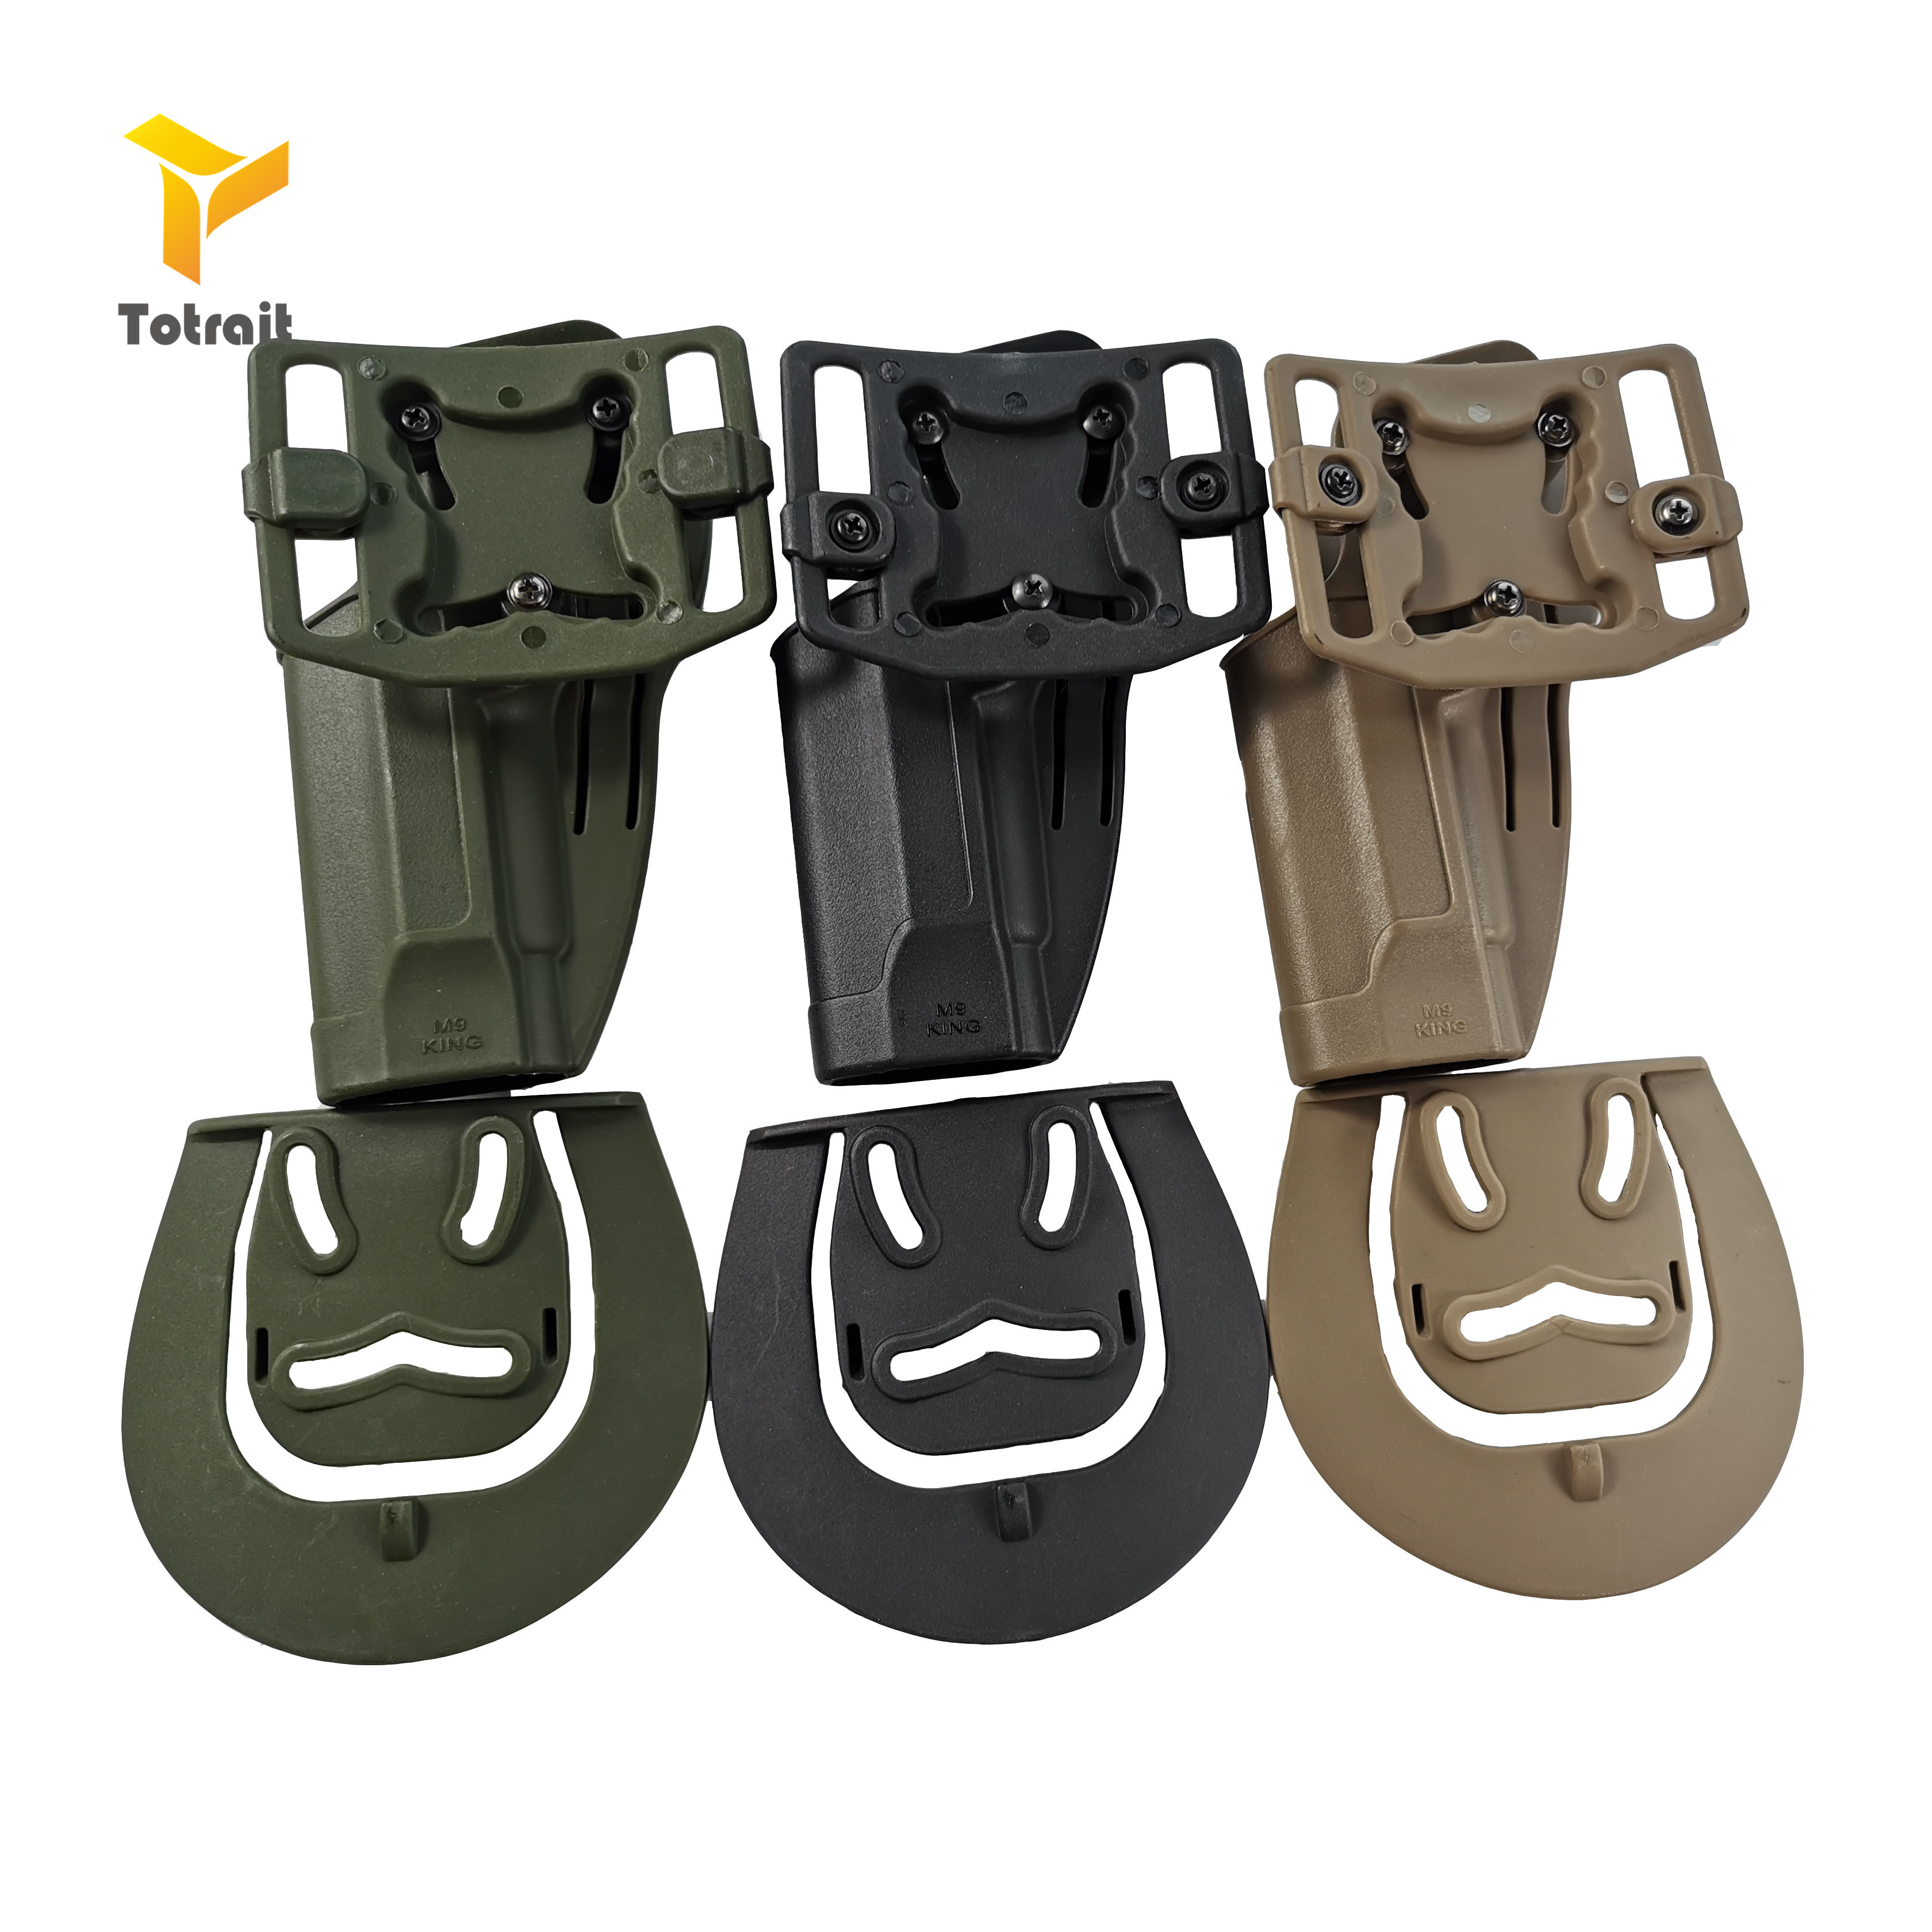 Right Hand Military M9 92 96 Pistol Waist Holster Tactical Hunting Airsoft Gun Right Hand Belt Pistol Holster black Green Tan in Holsters from Sports Entertainment